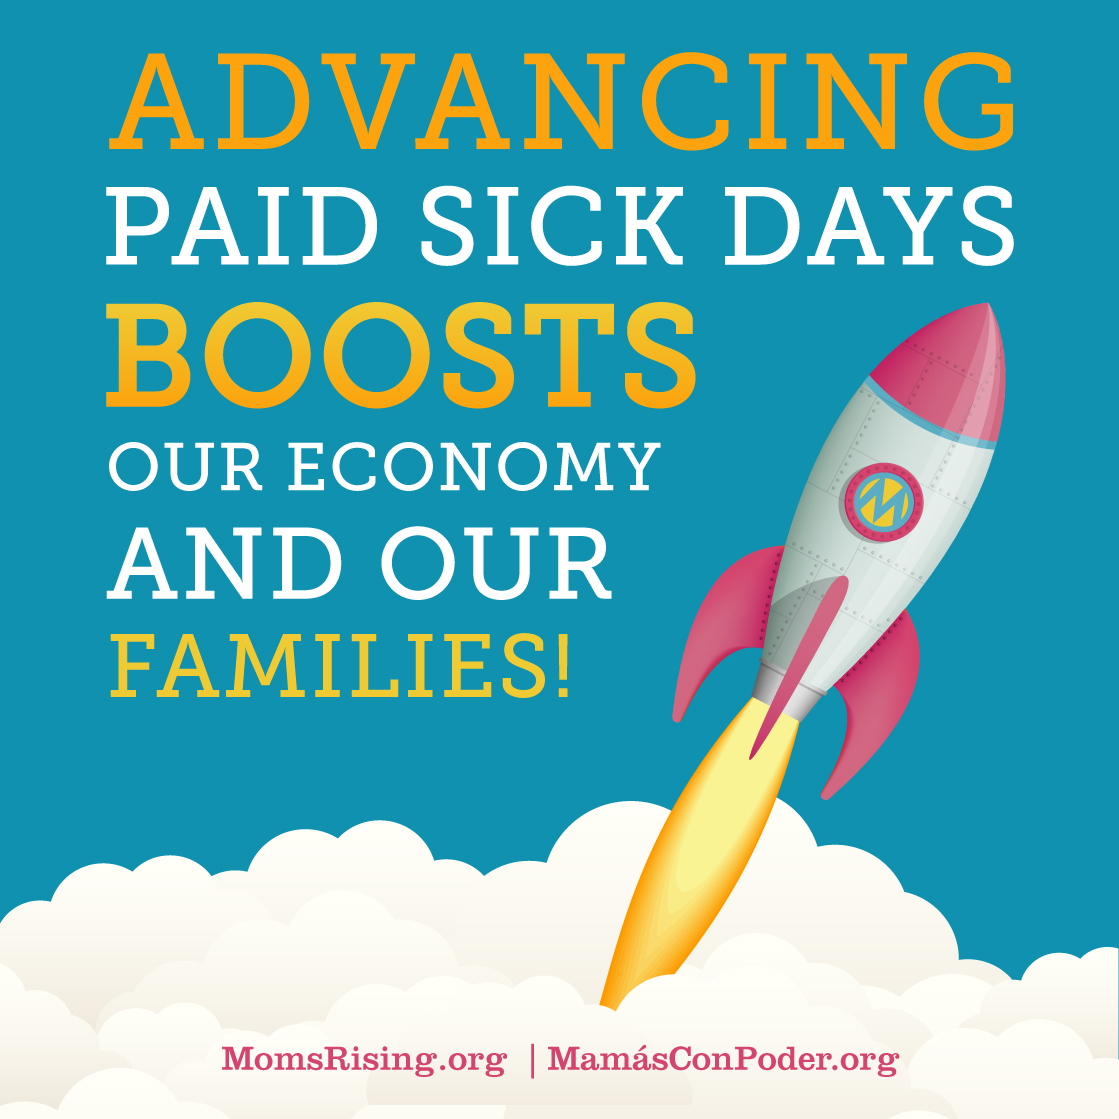 Advancing Paid Sick Days Boosts our Economy and our Families!